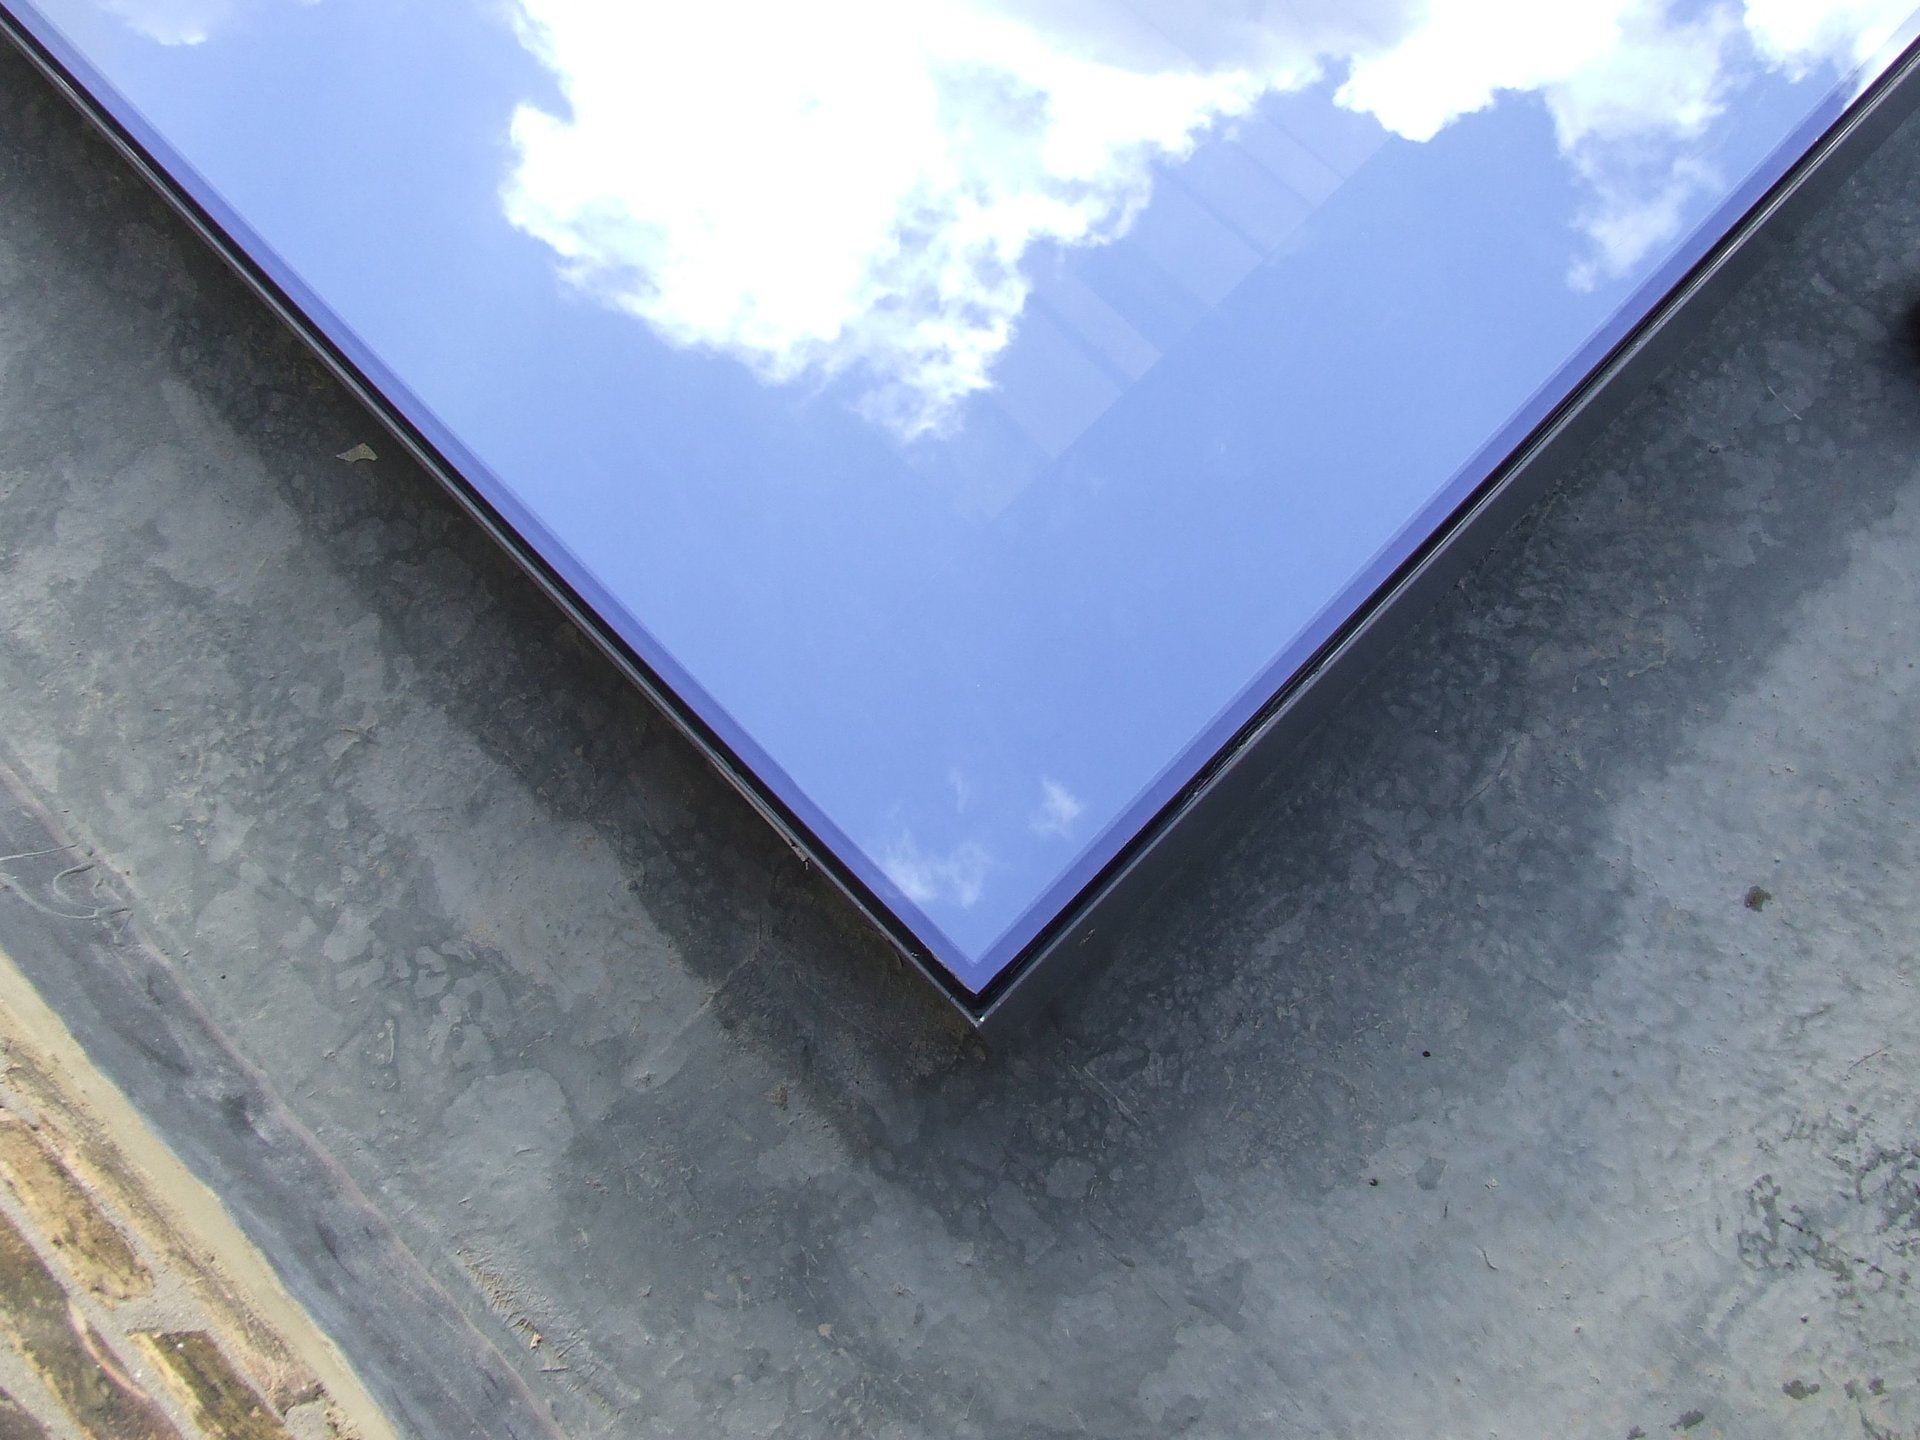 rooflight with reflection of the sky